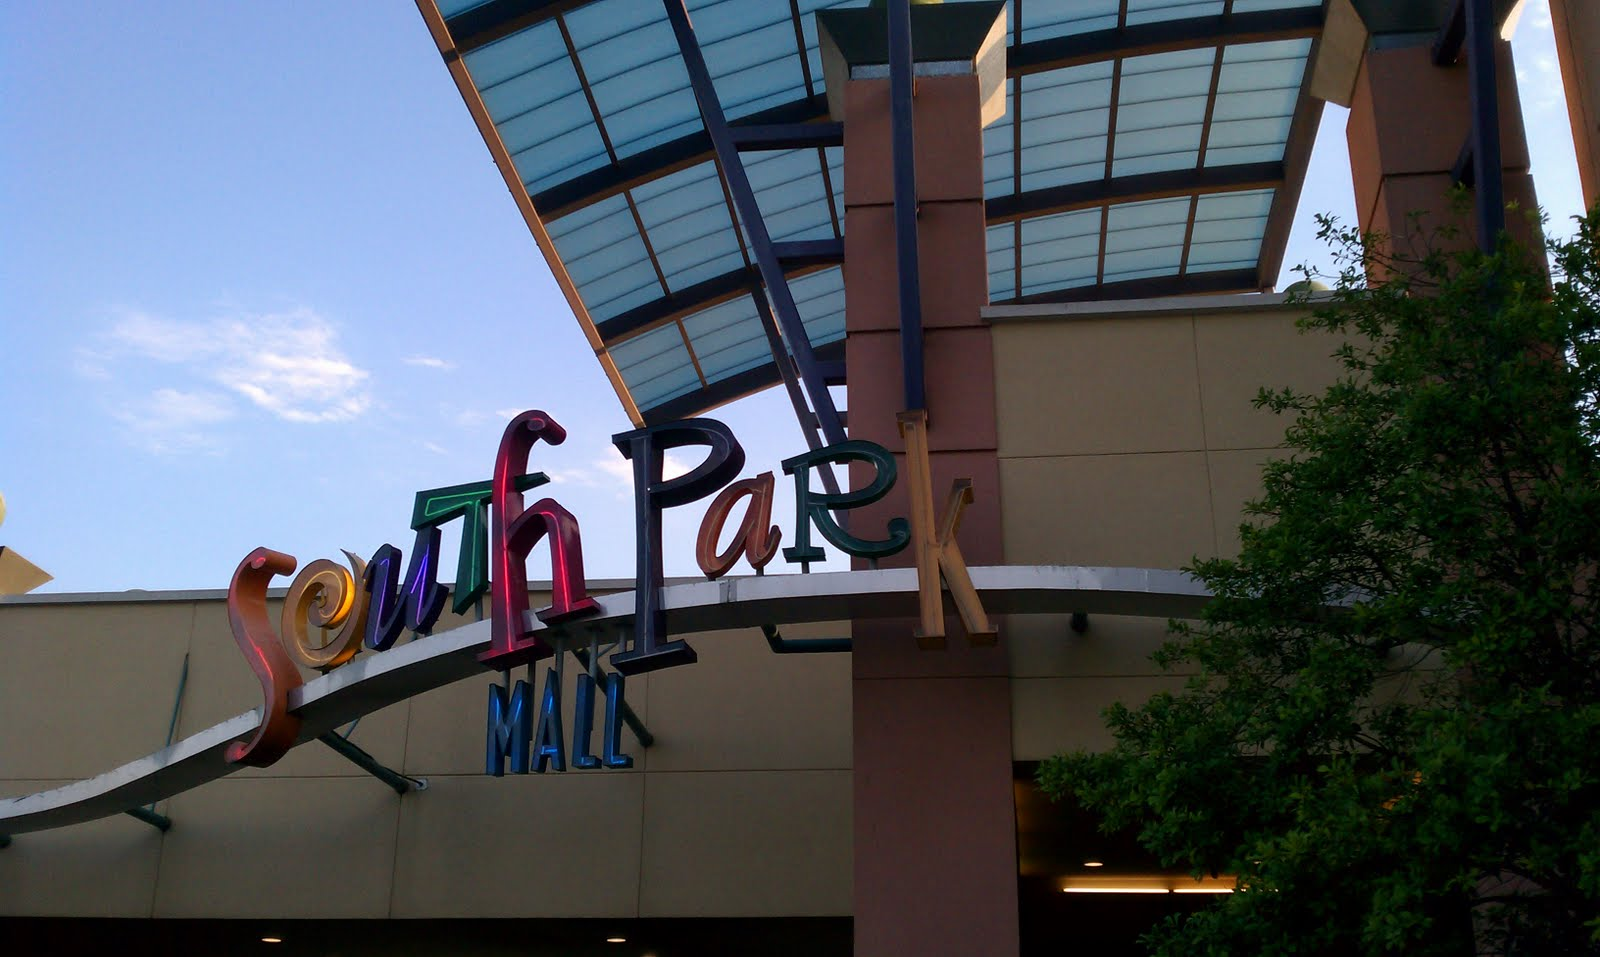 Southpark Mall | Colonial Heights VA